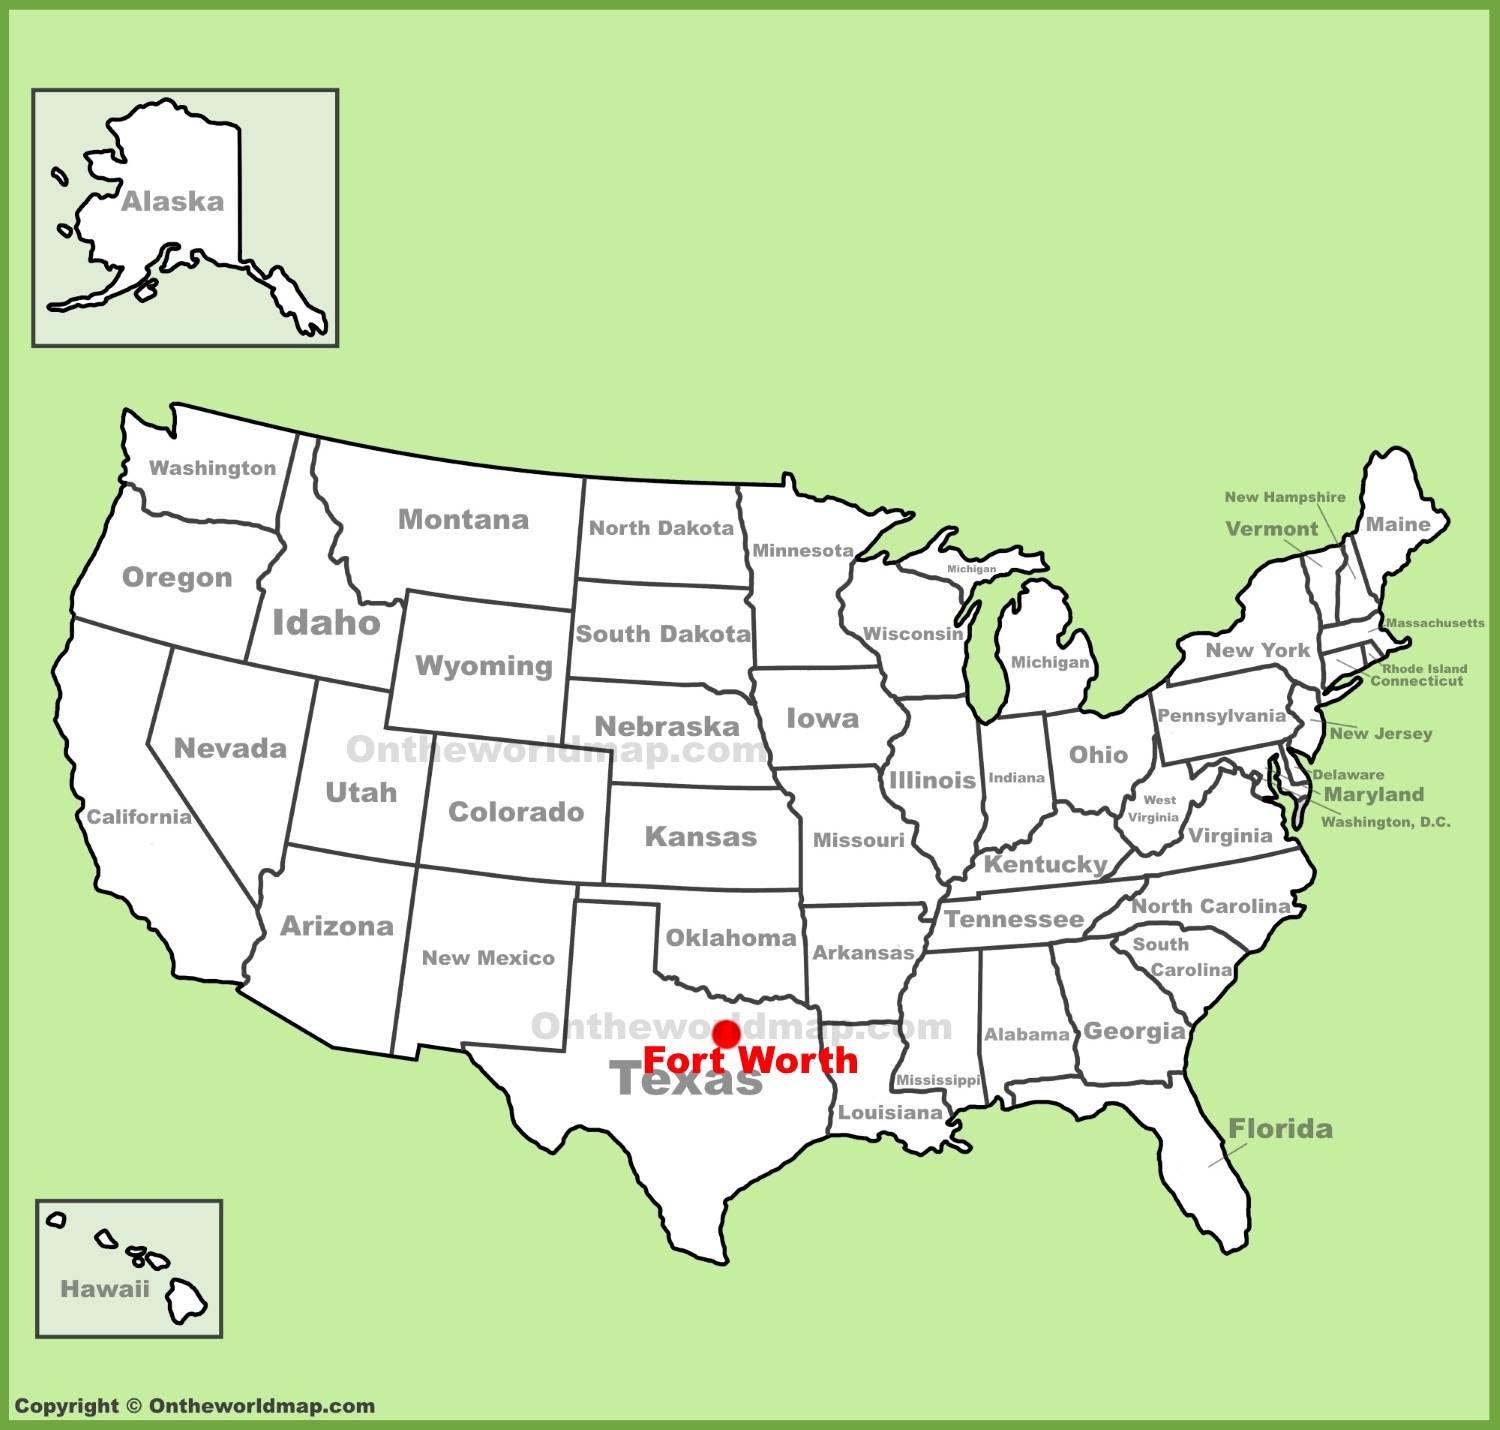 Fort Worth Maps | Texas, U.s. | Maps Of Fort Worth - Where Is Fort Worth Texas On A Map